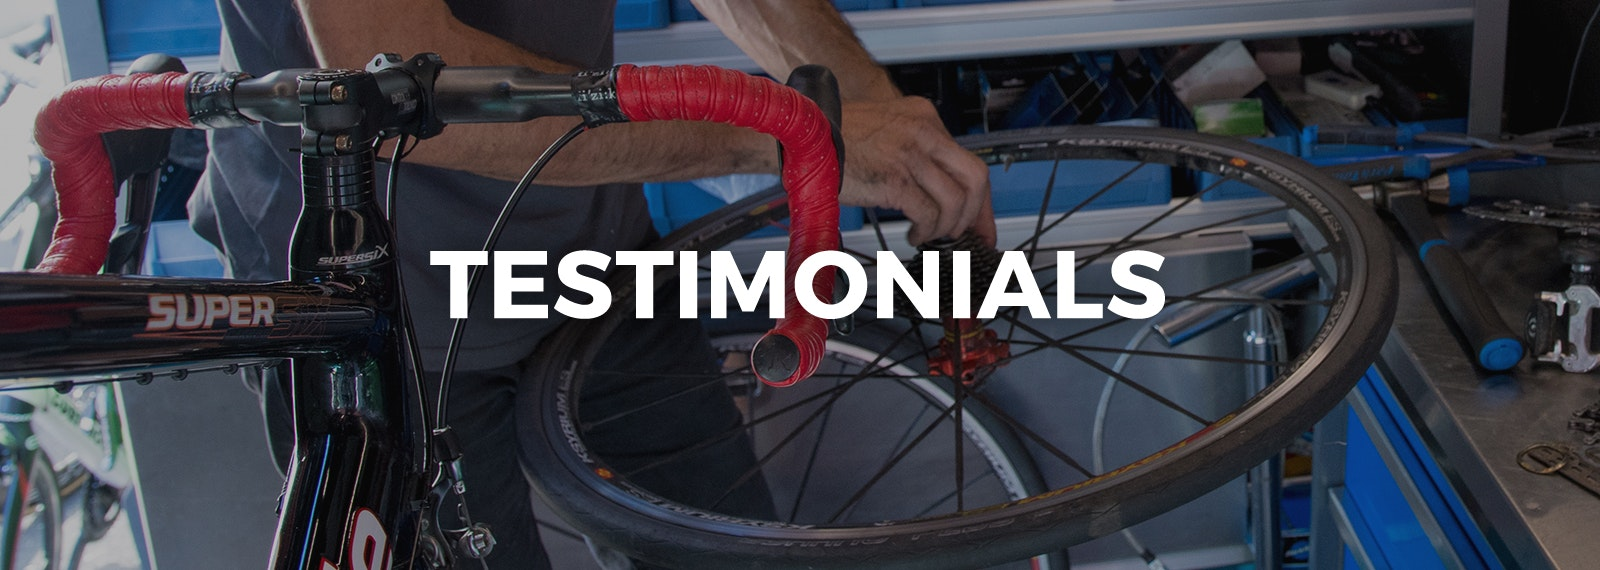 What People Say About Bike Fix Mobile